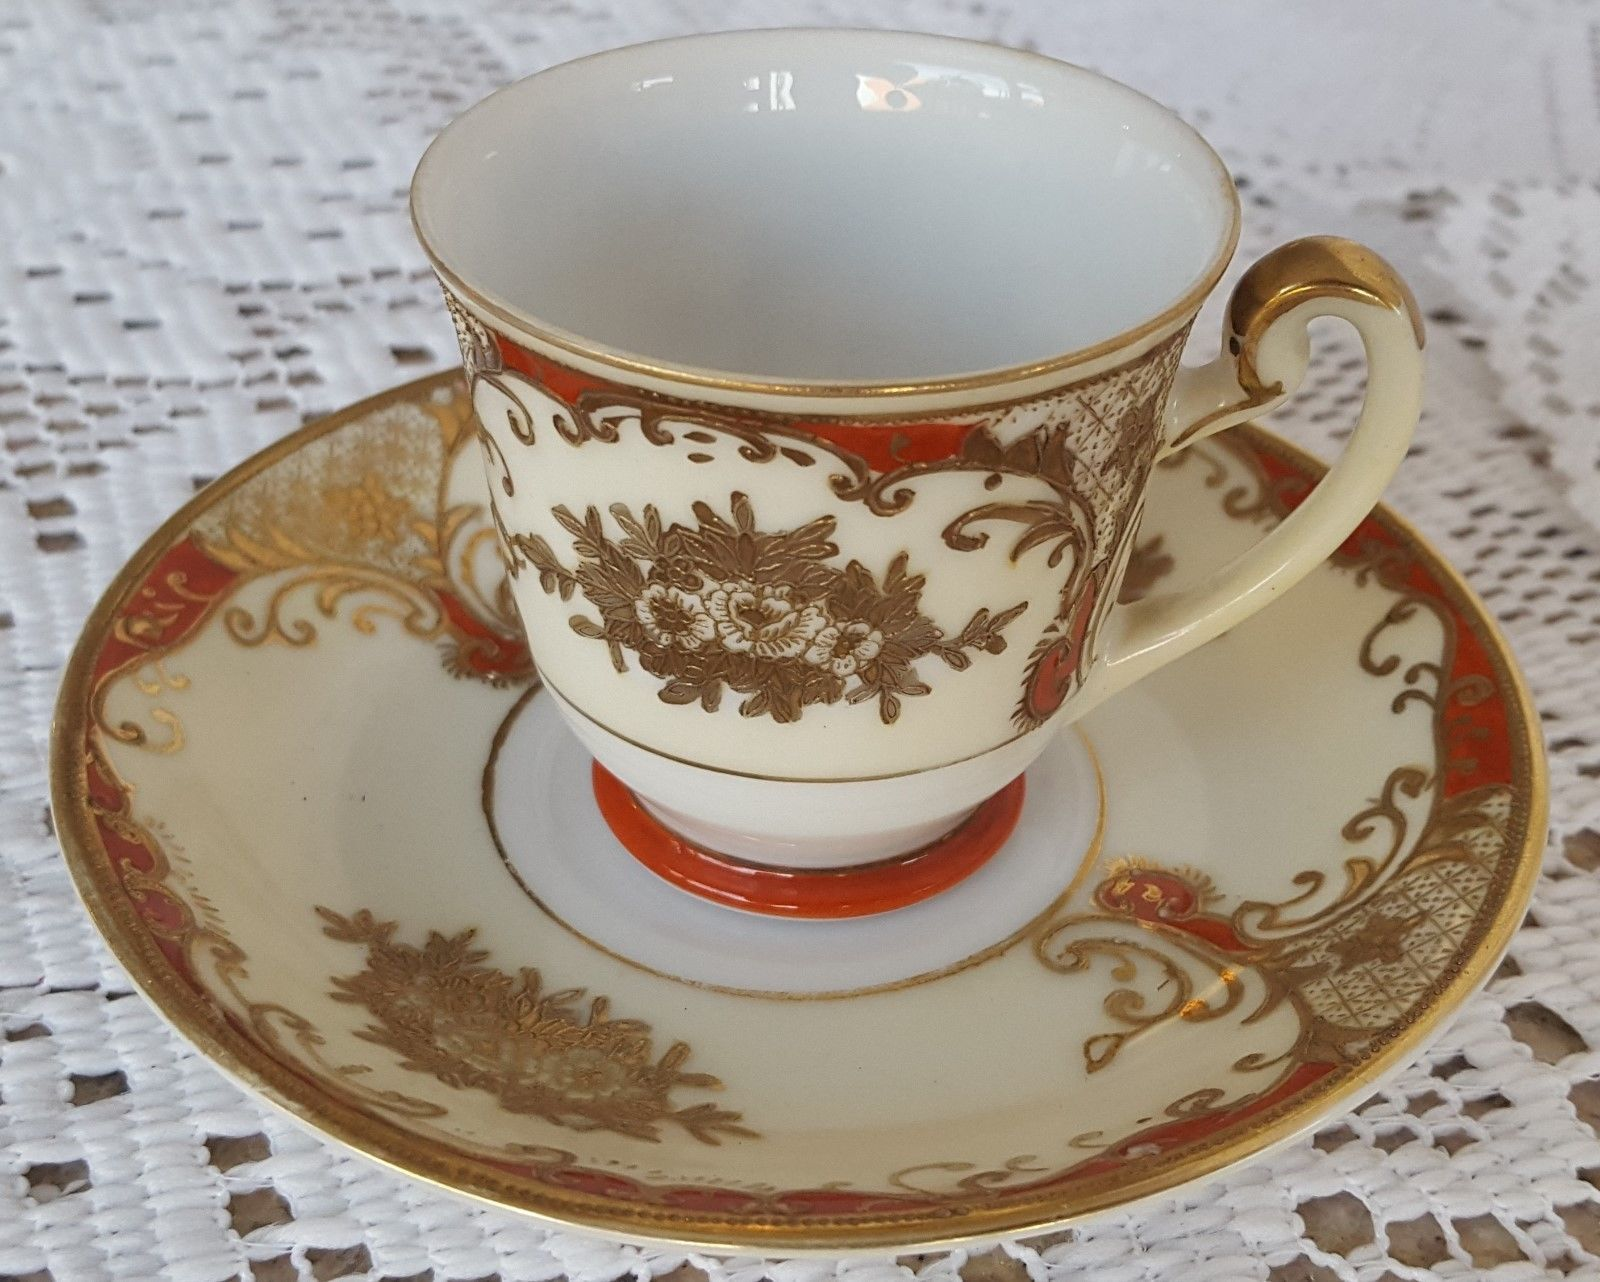 Meito China Foreign Hand Painted Demitasse Cup & Saucer Set Fine China  Orange Re